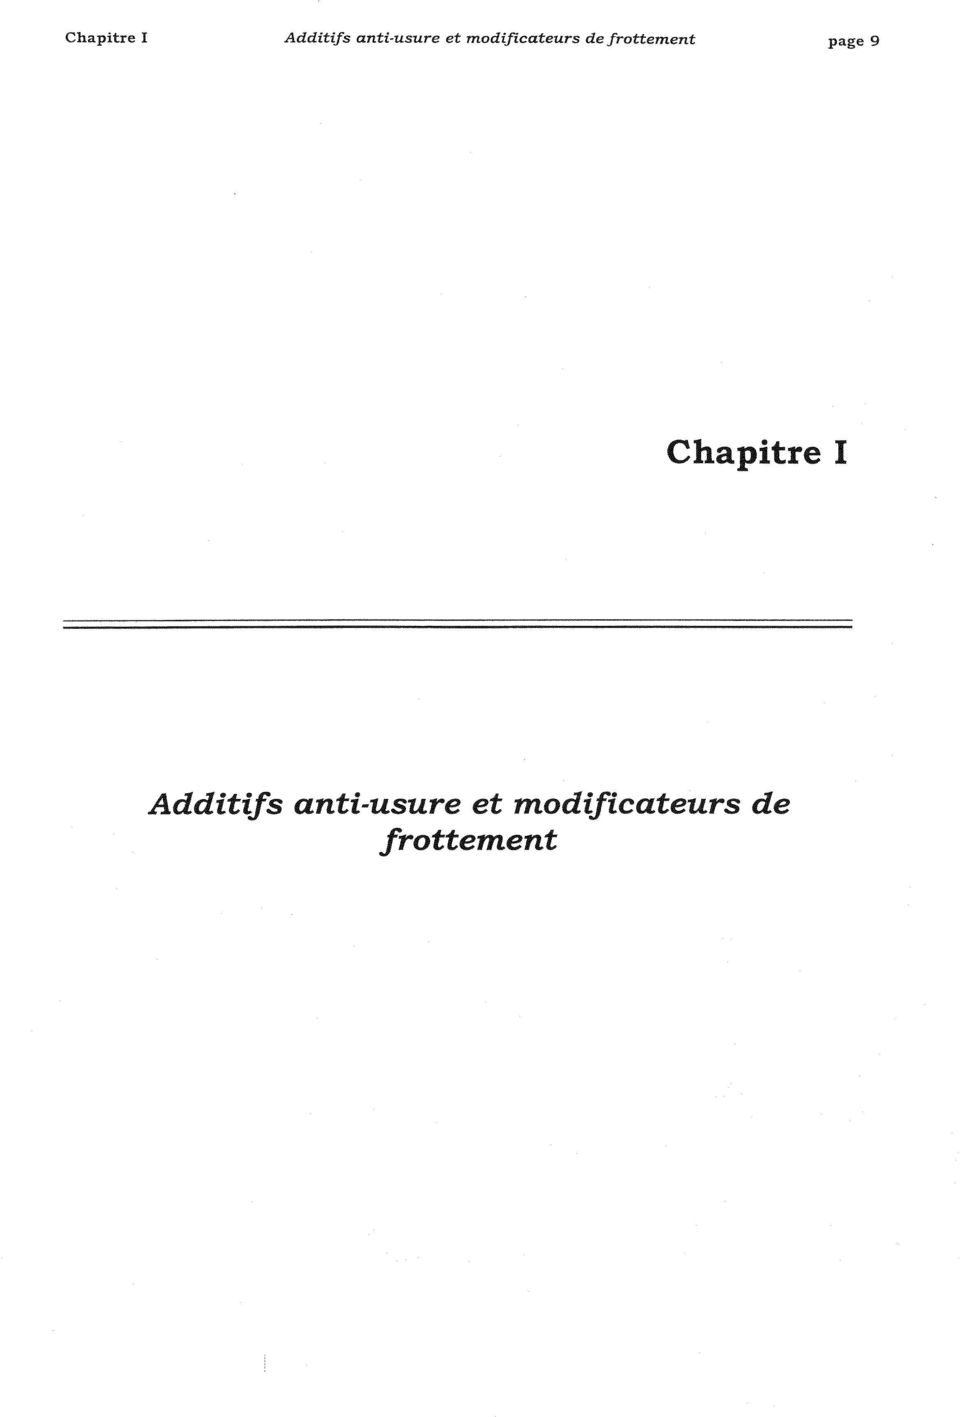 de frottement page 9 Additifs